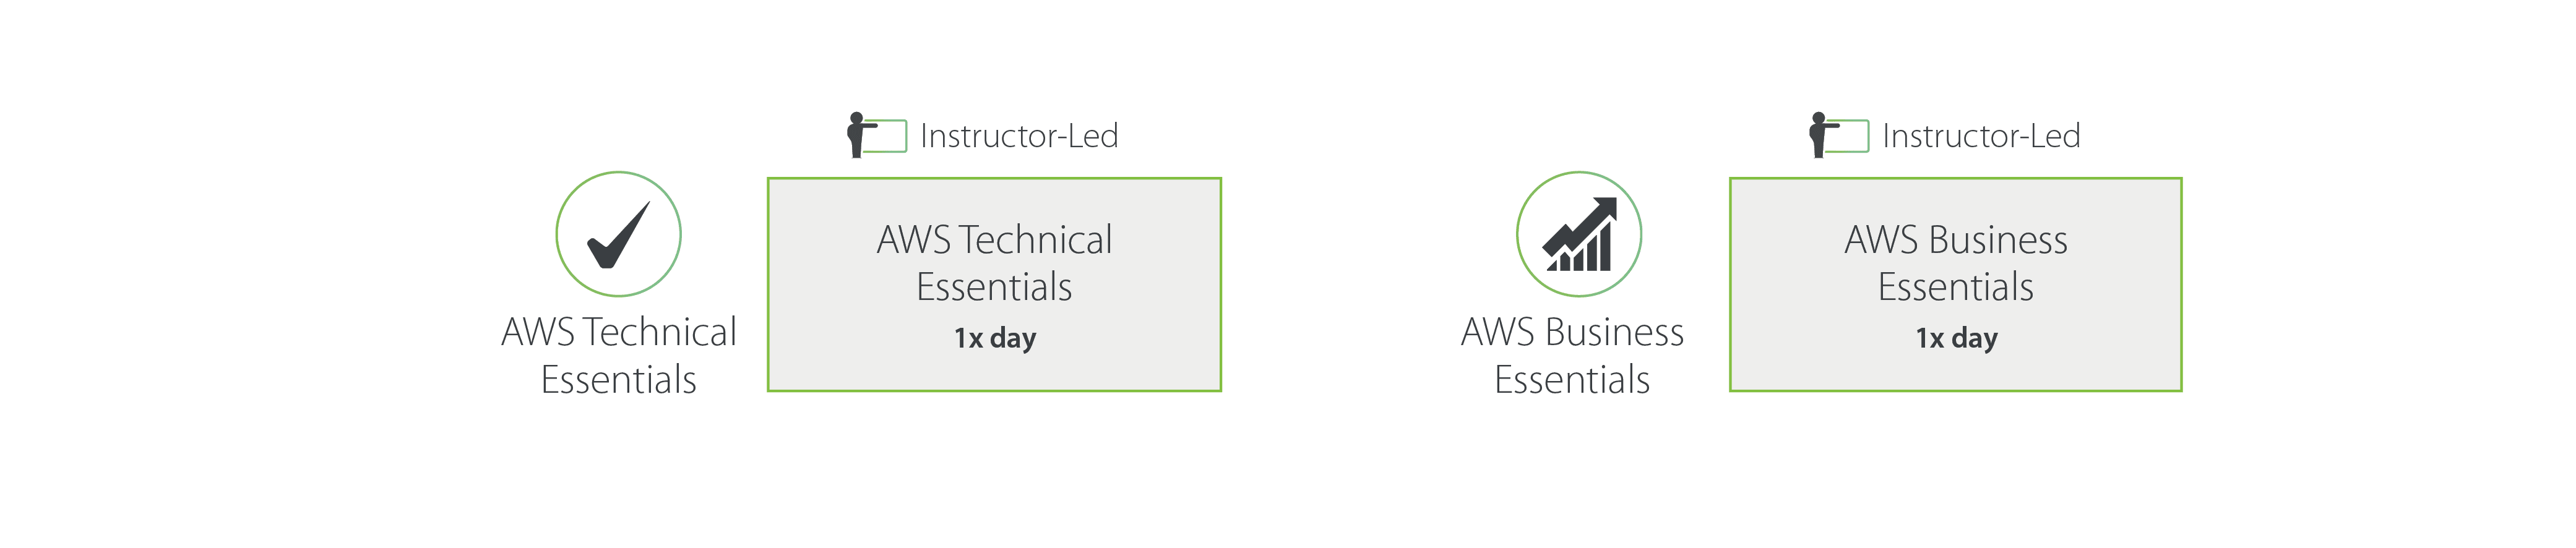 Bespoke Training Services AWS Learning Pathway